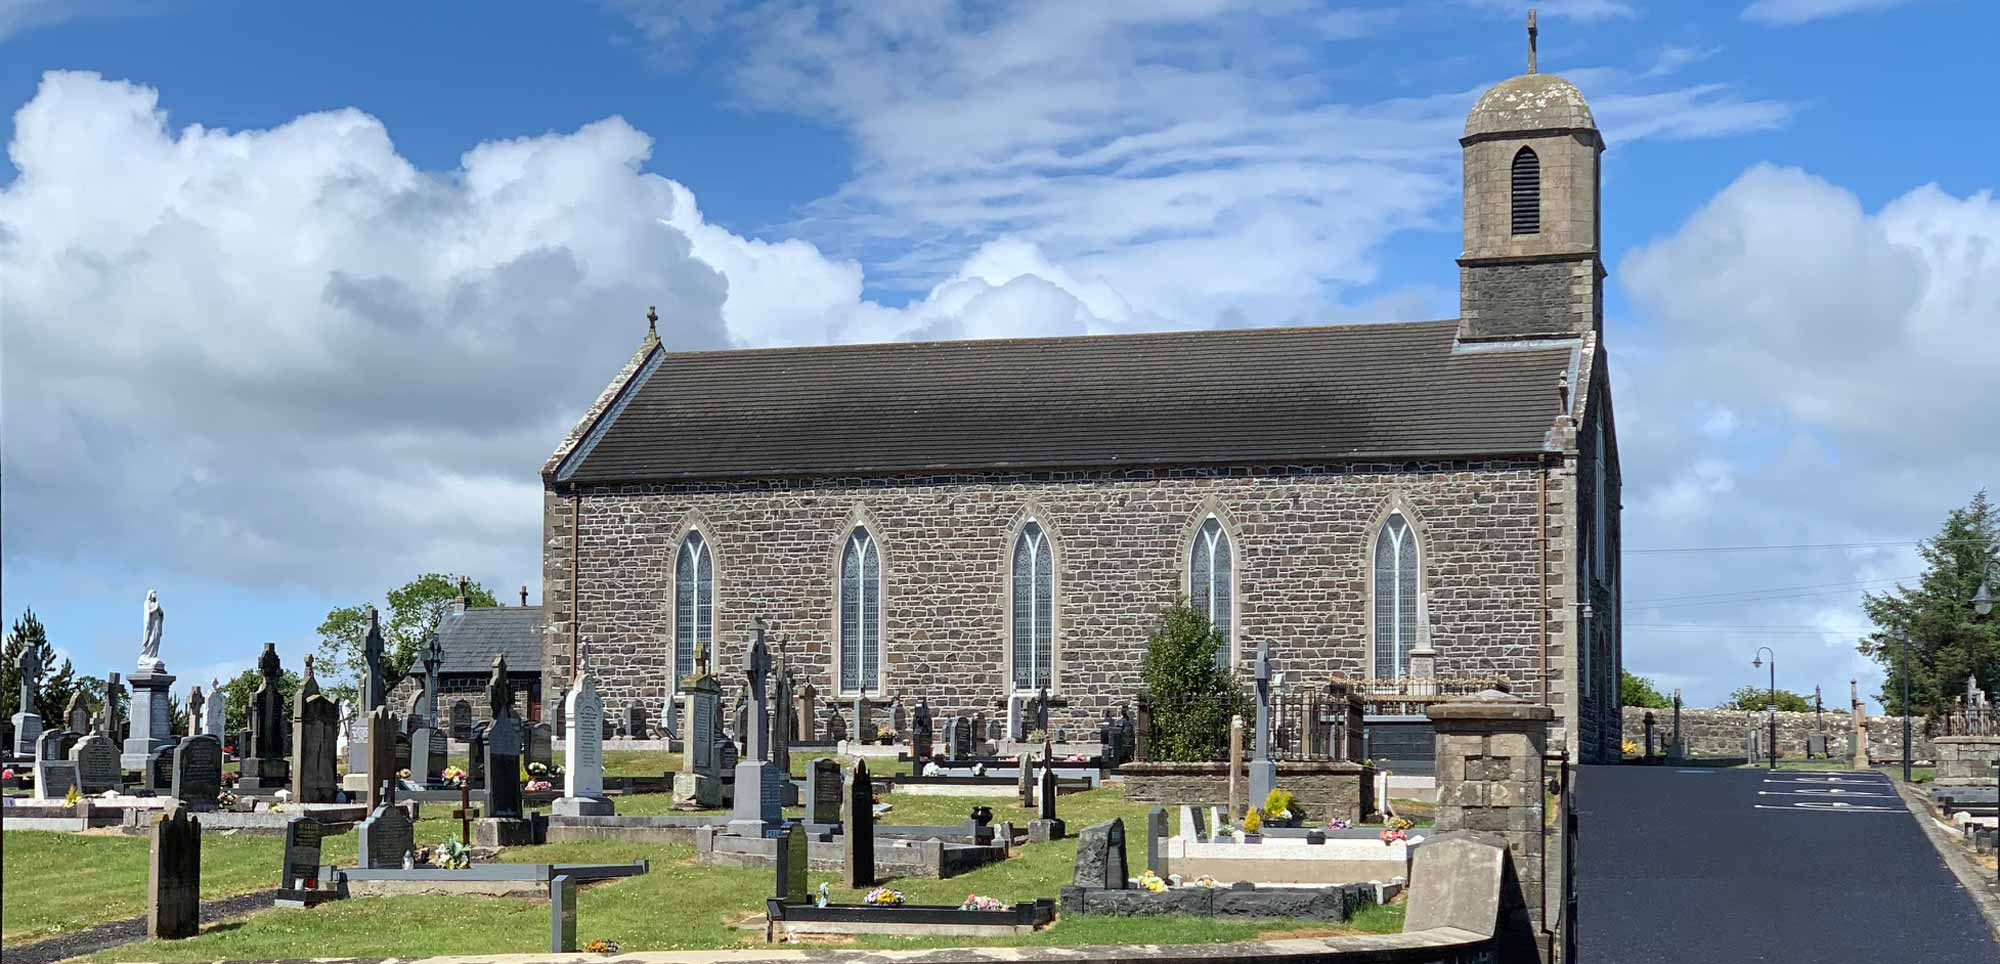 Parish of Kilrea, Derry Diocese